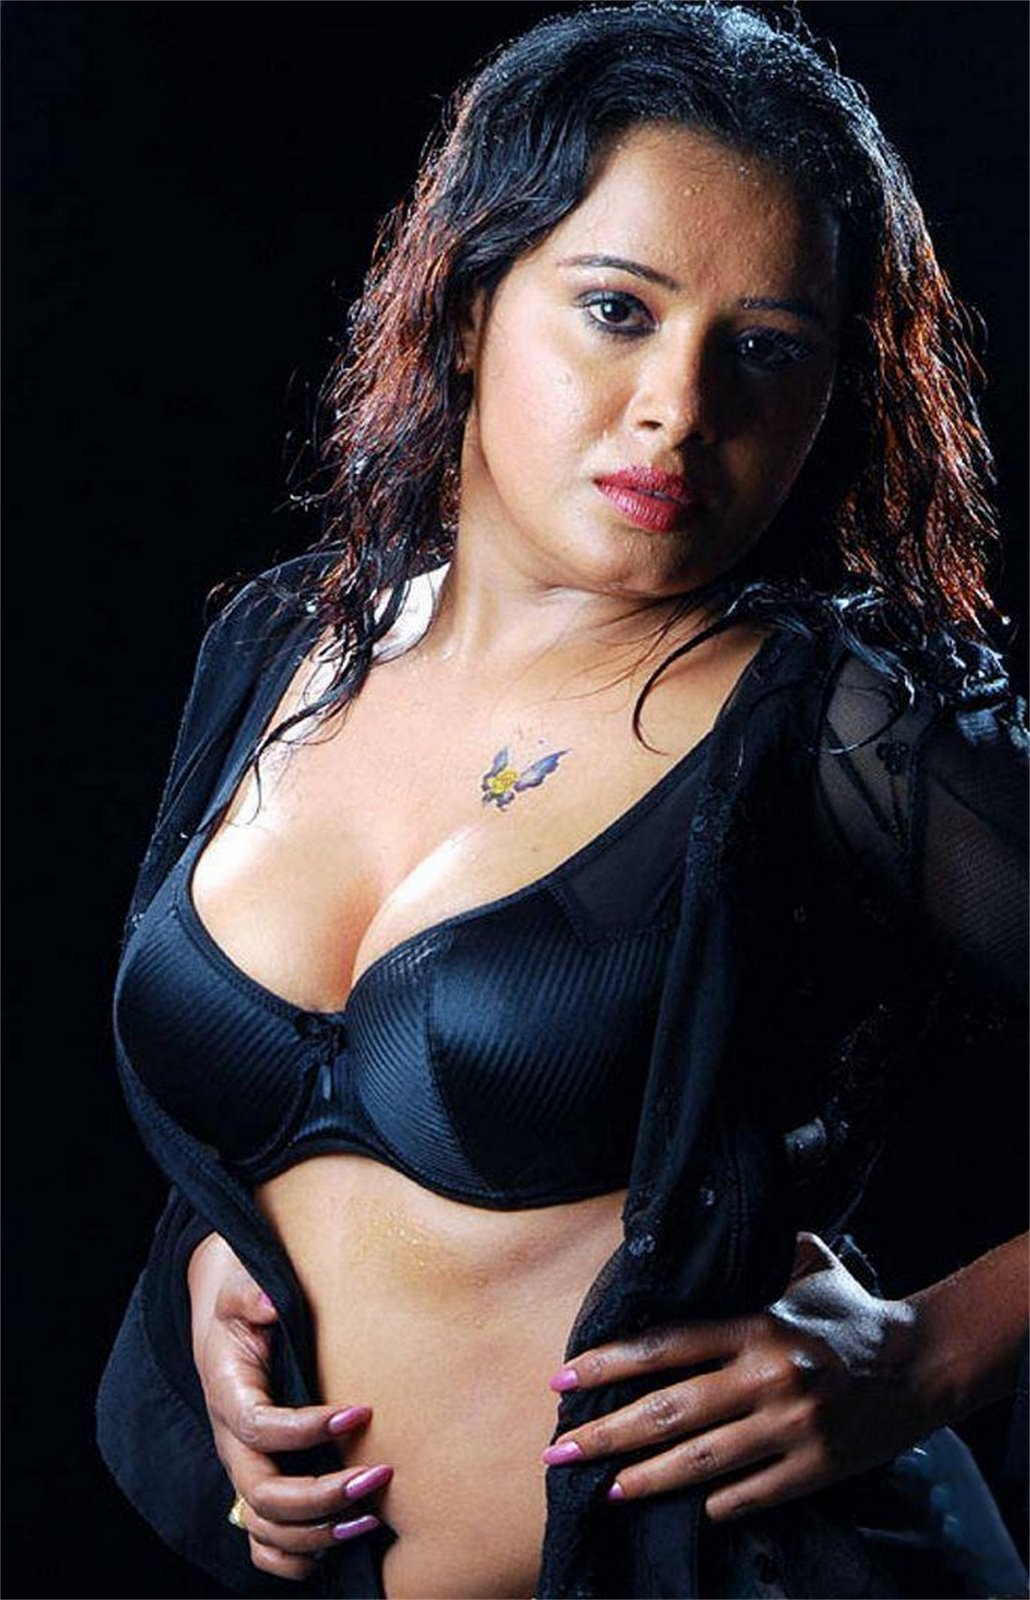 for more mallu aunty bhabhi